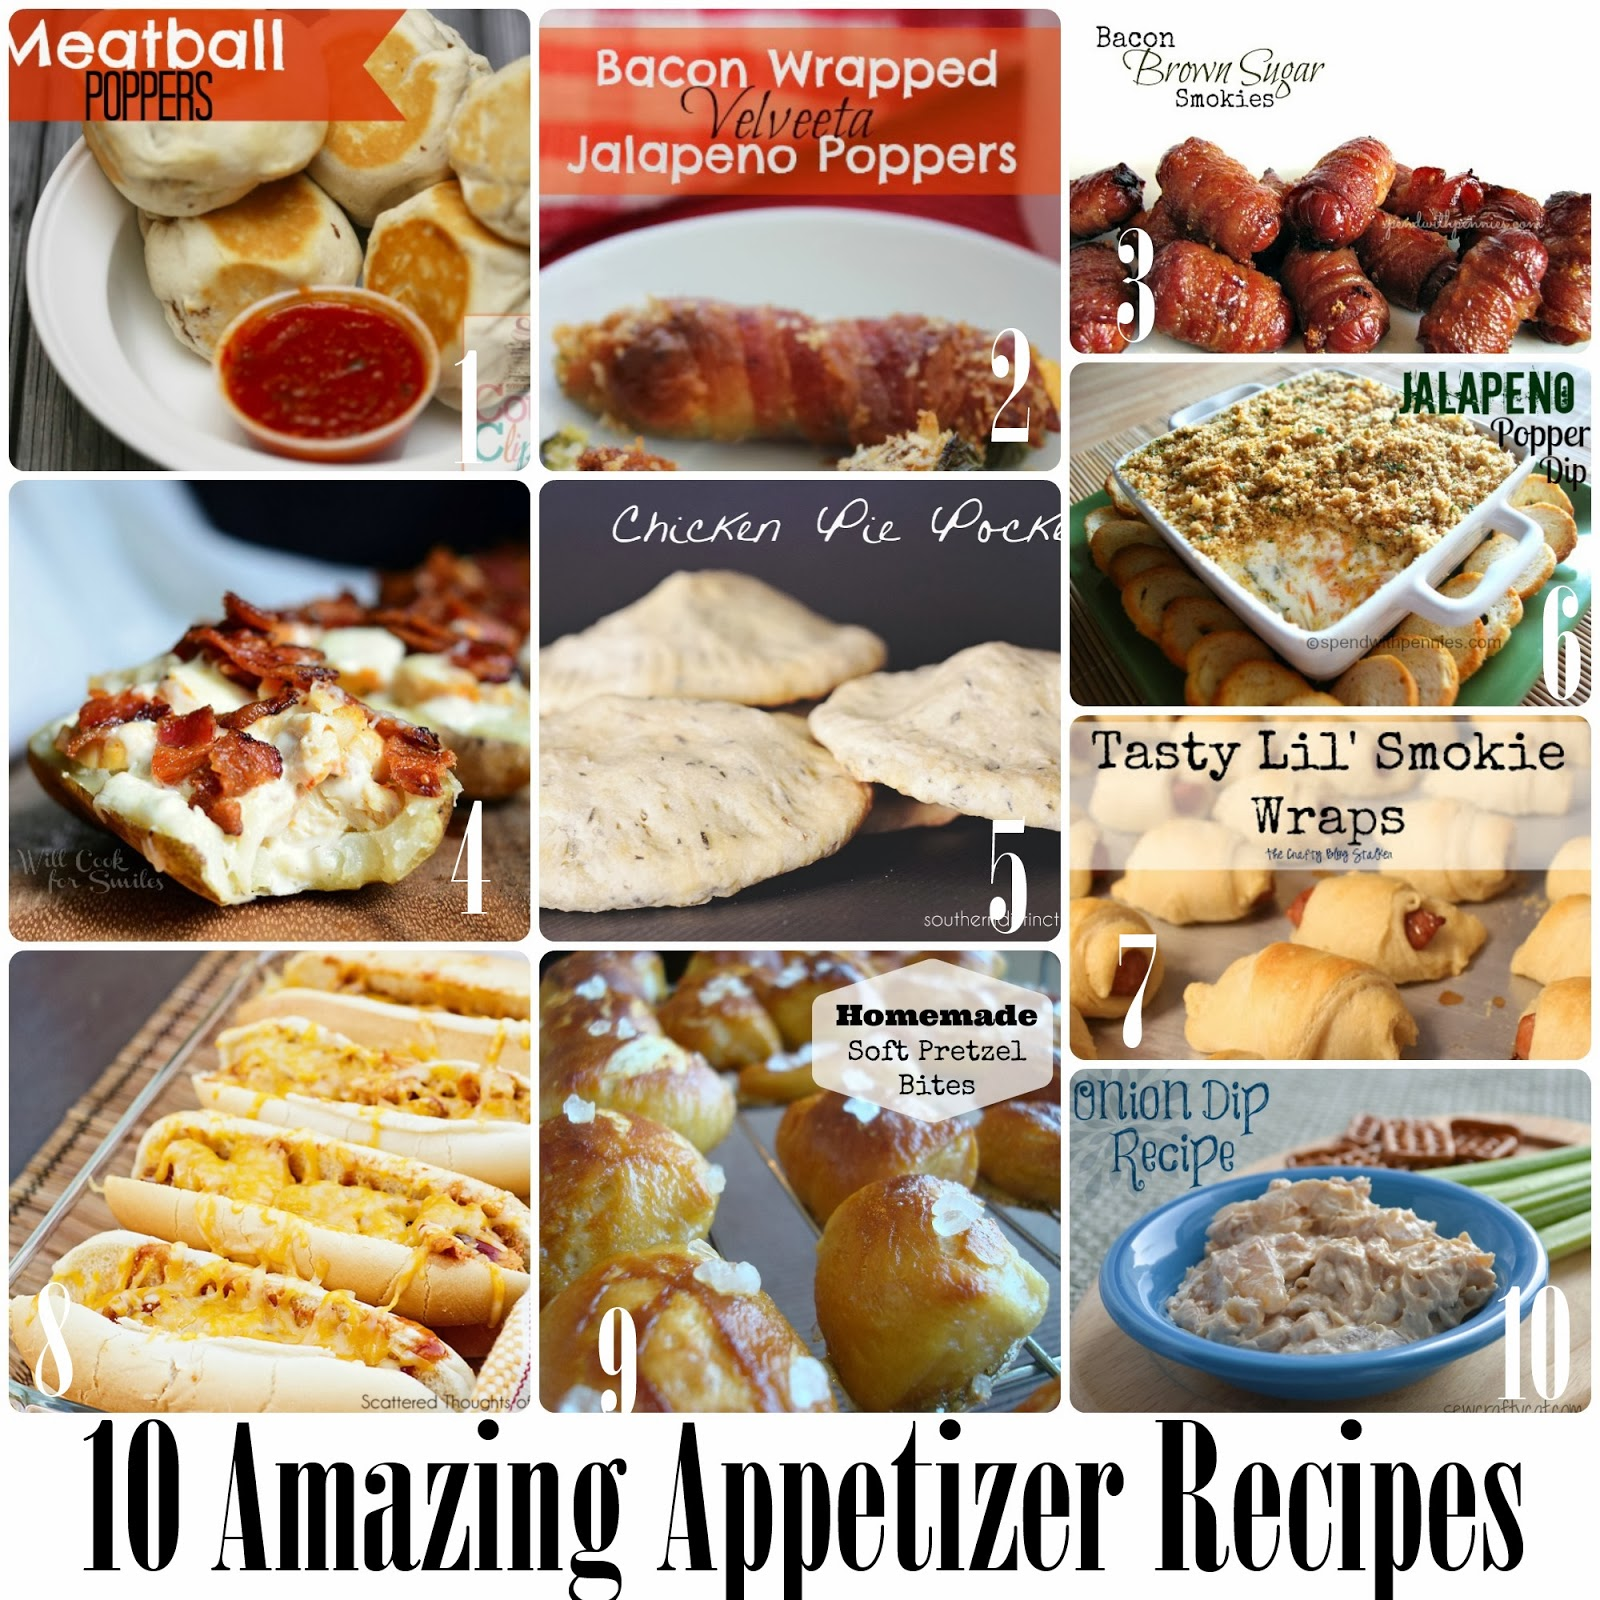 10 Amazing Appetizer Recipes over at Making the World Cuter